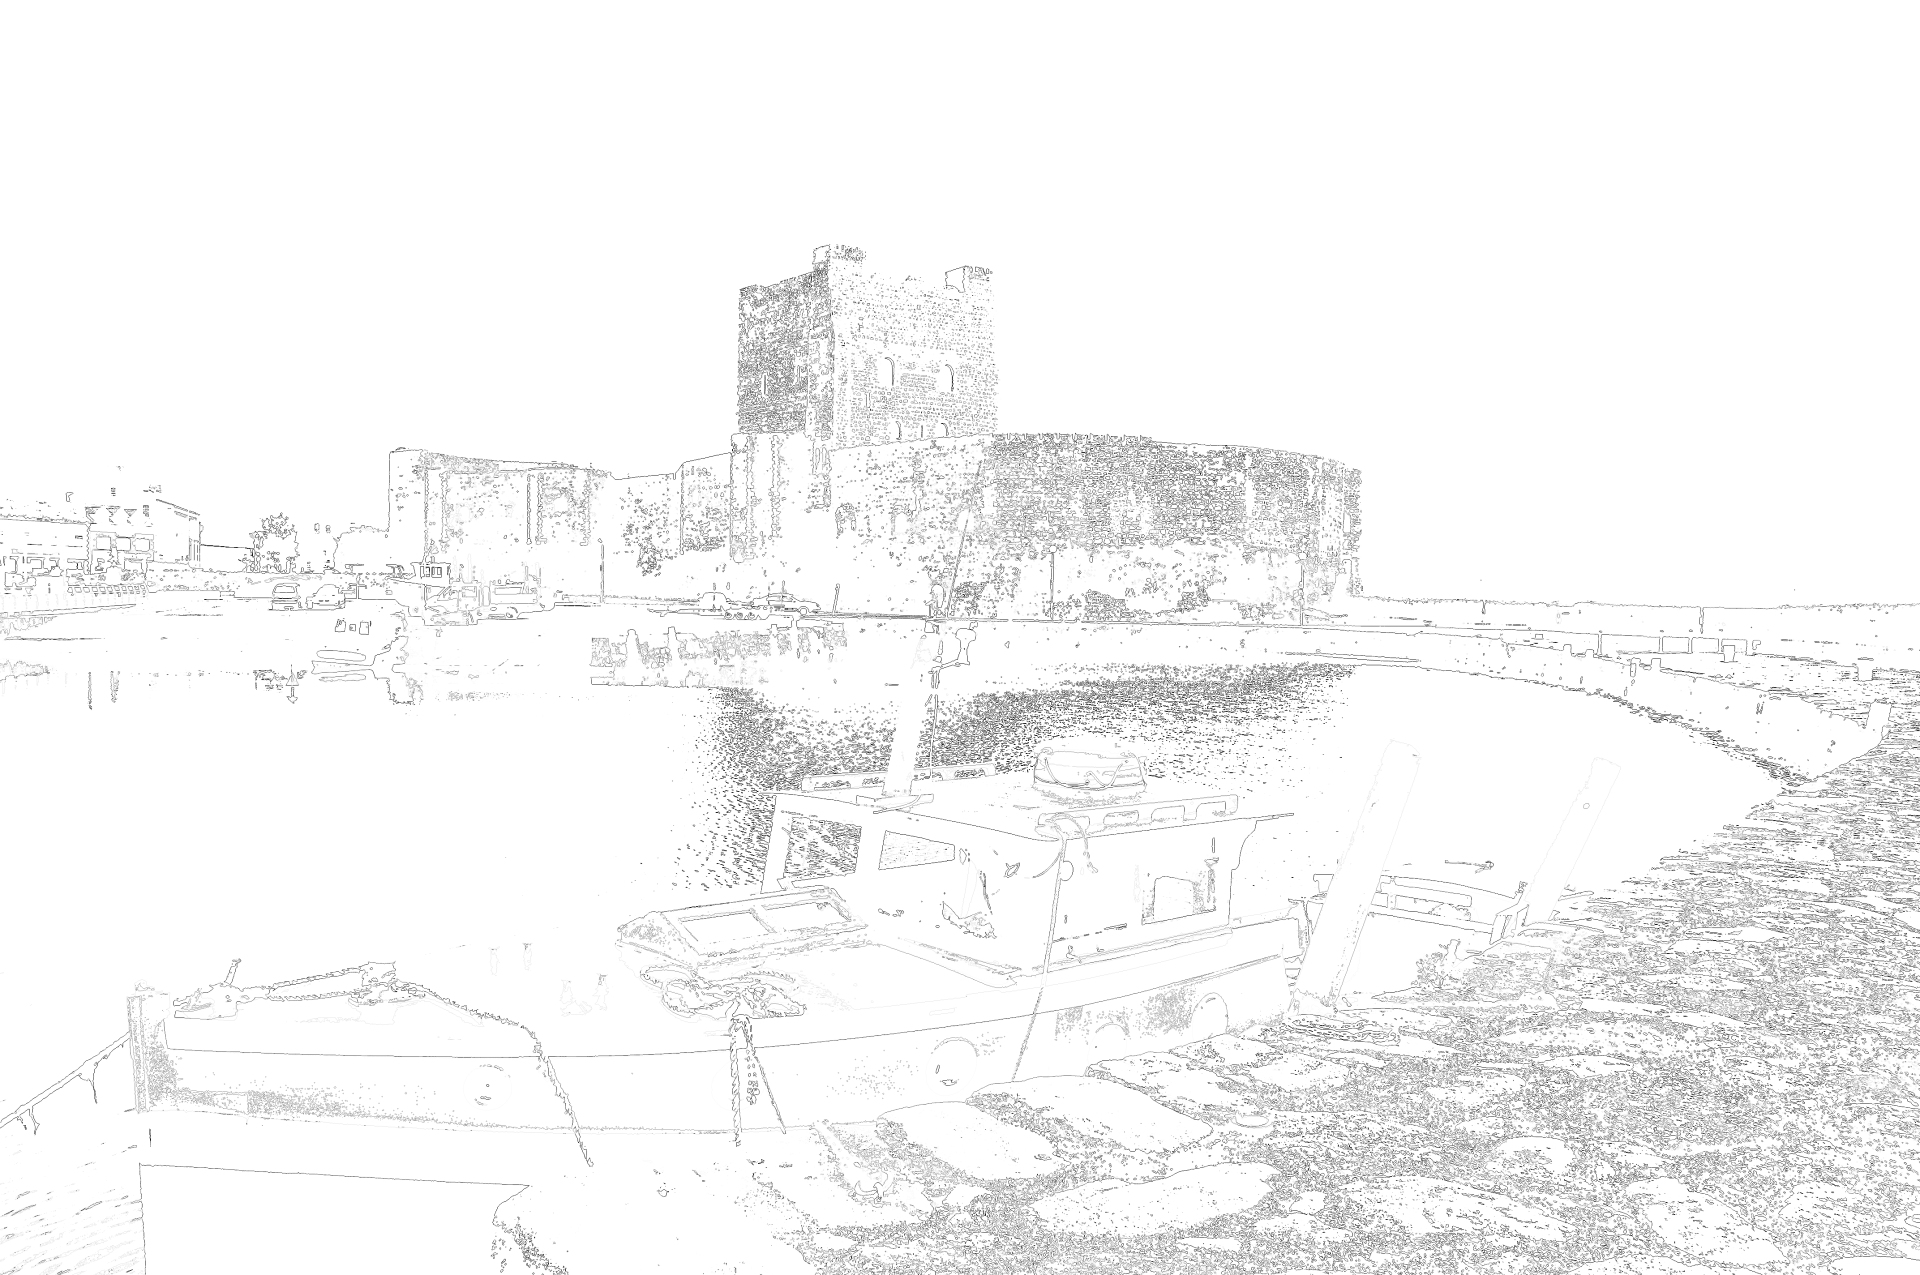 A trace of Carrickfergus.